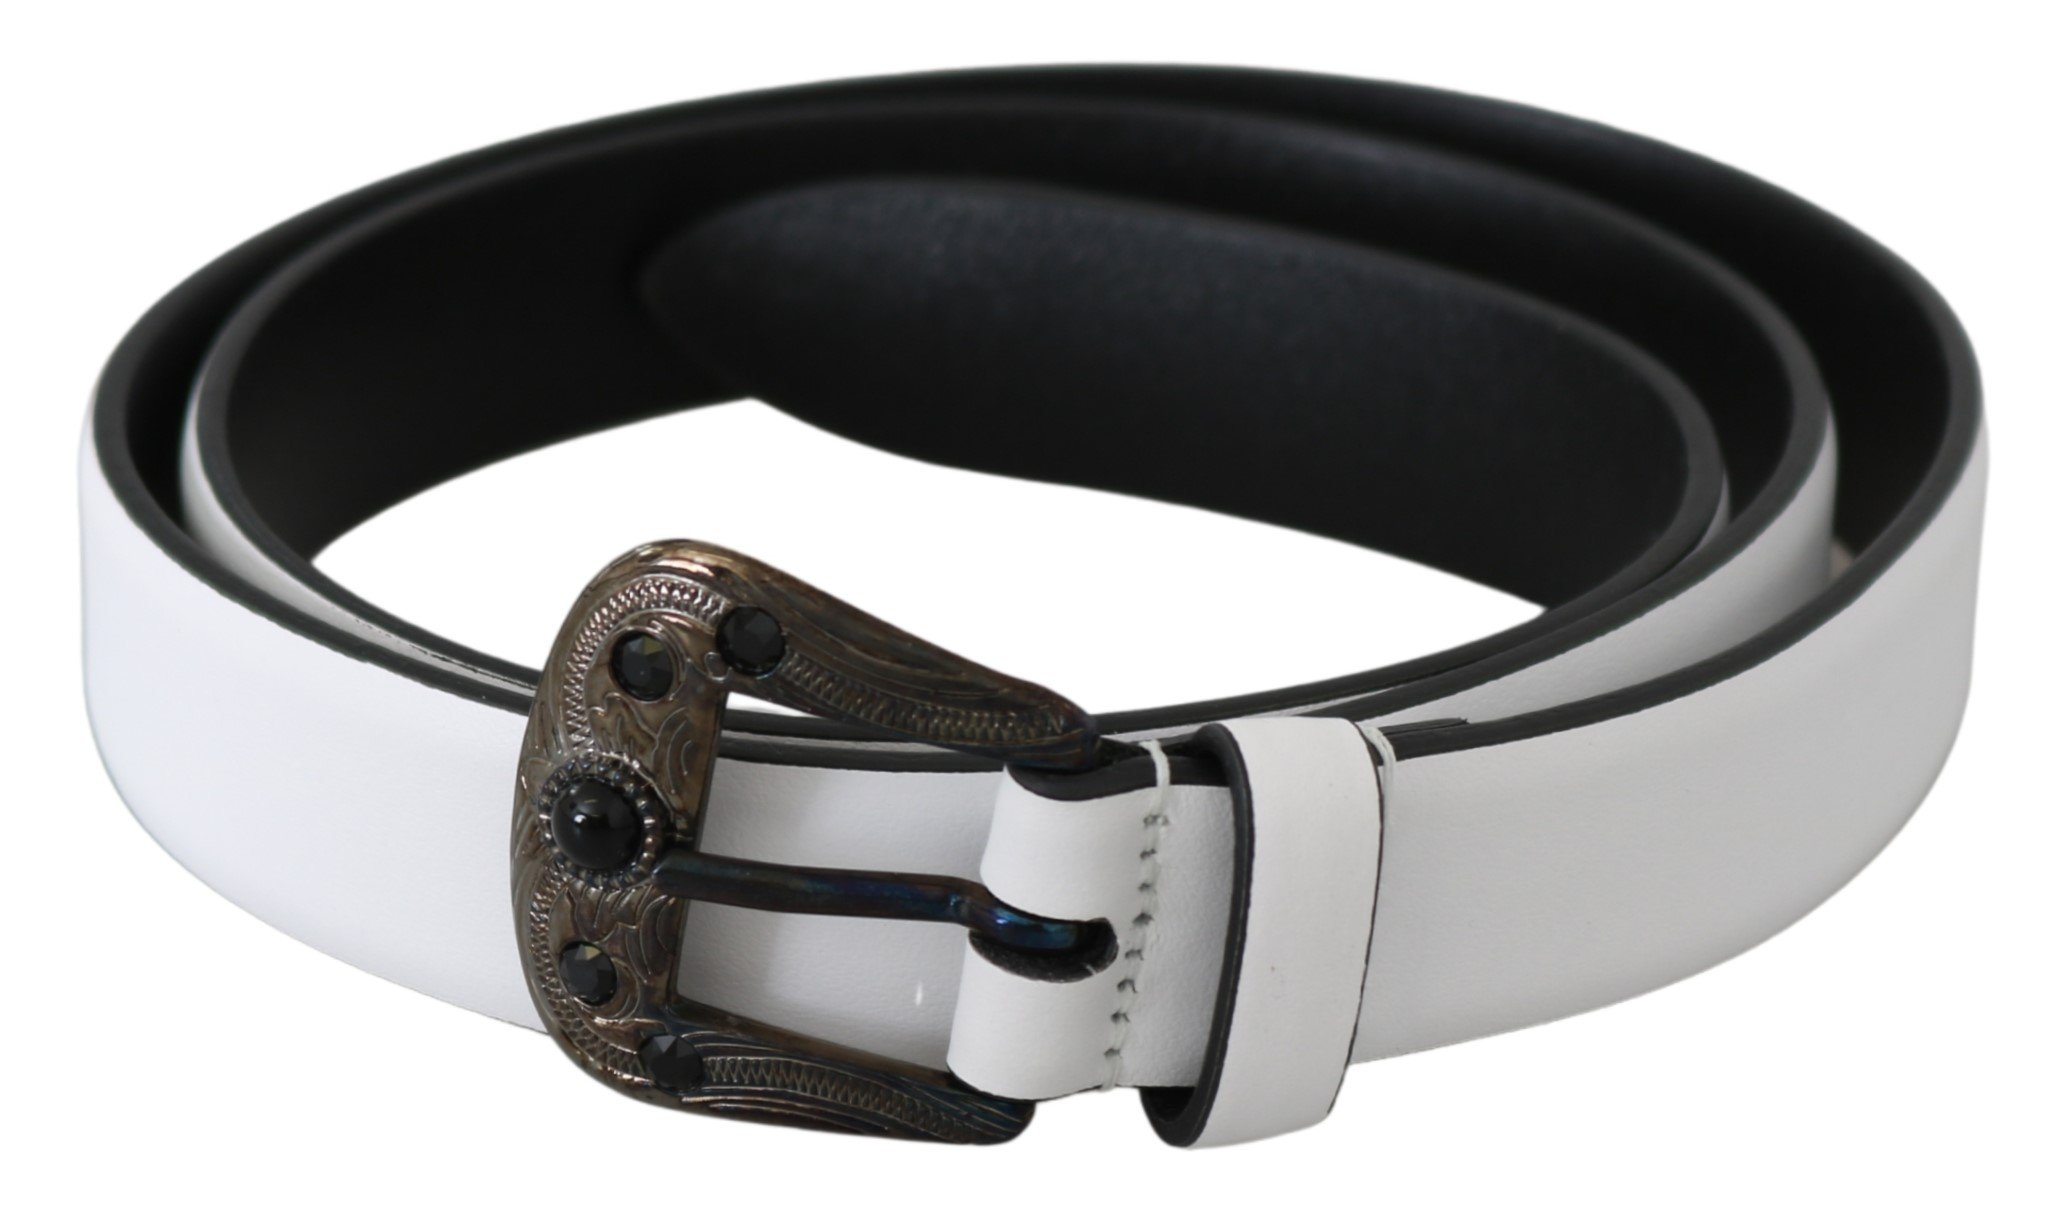 White Black Leather Crystal Baroque Buckle Belt - 90 cm / 36 Inches